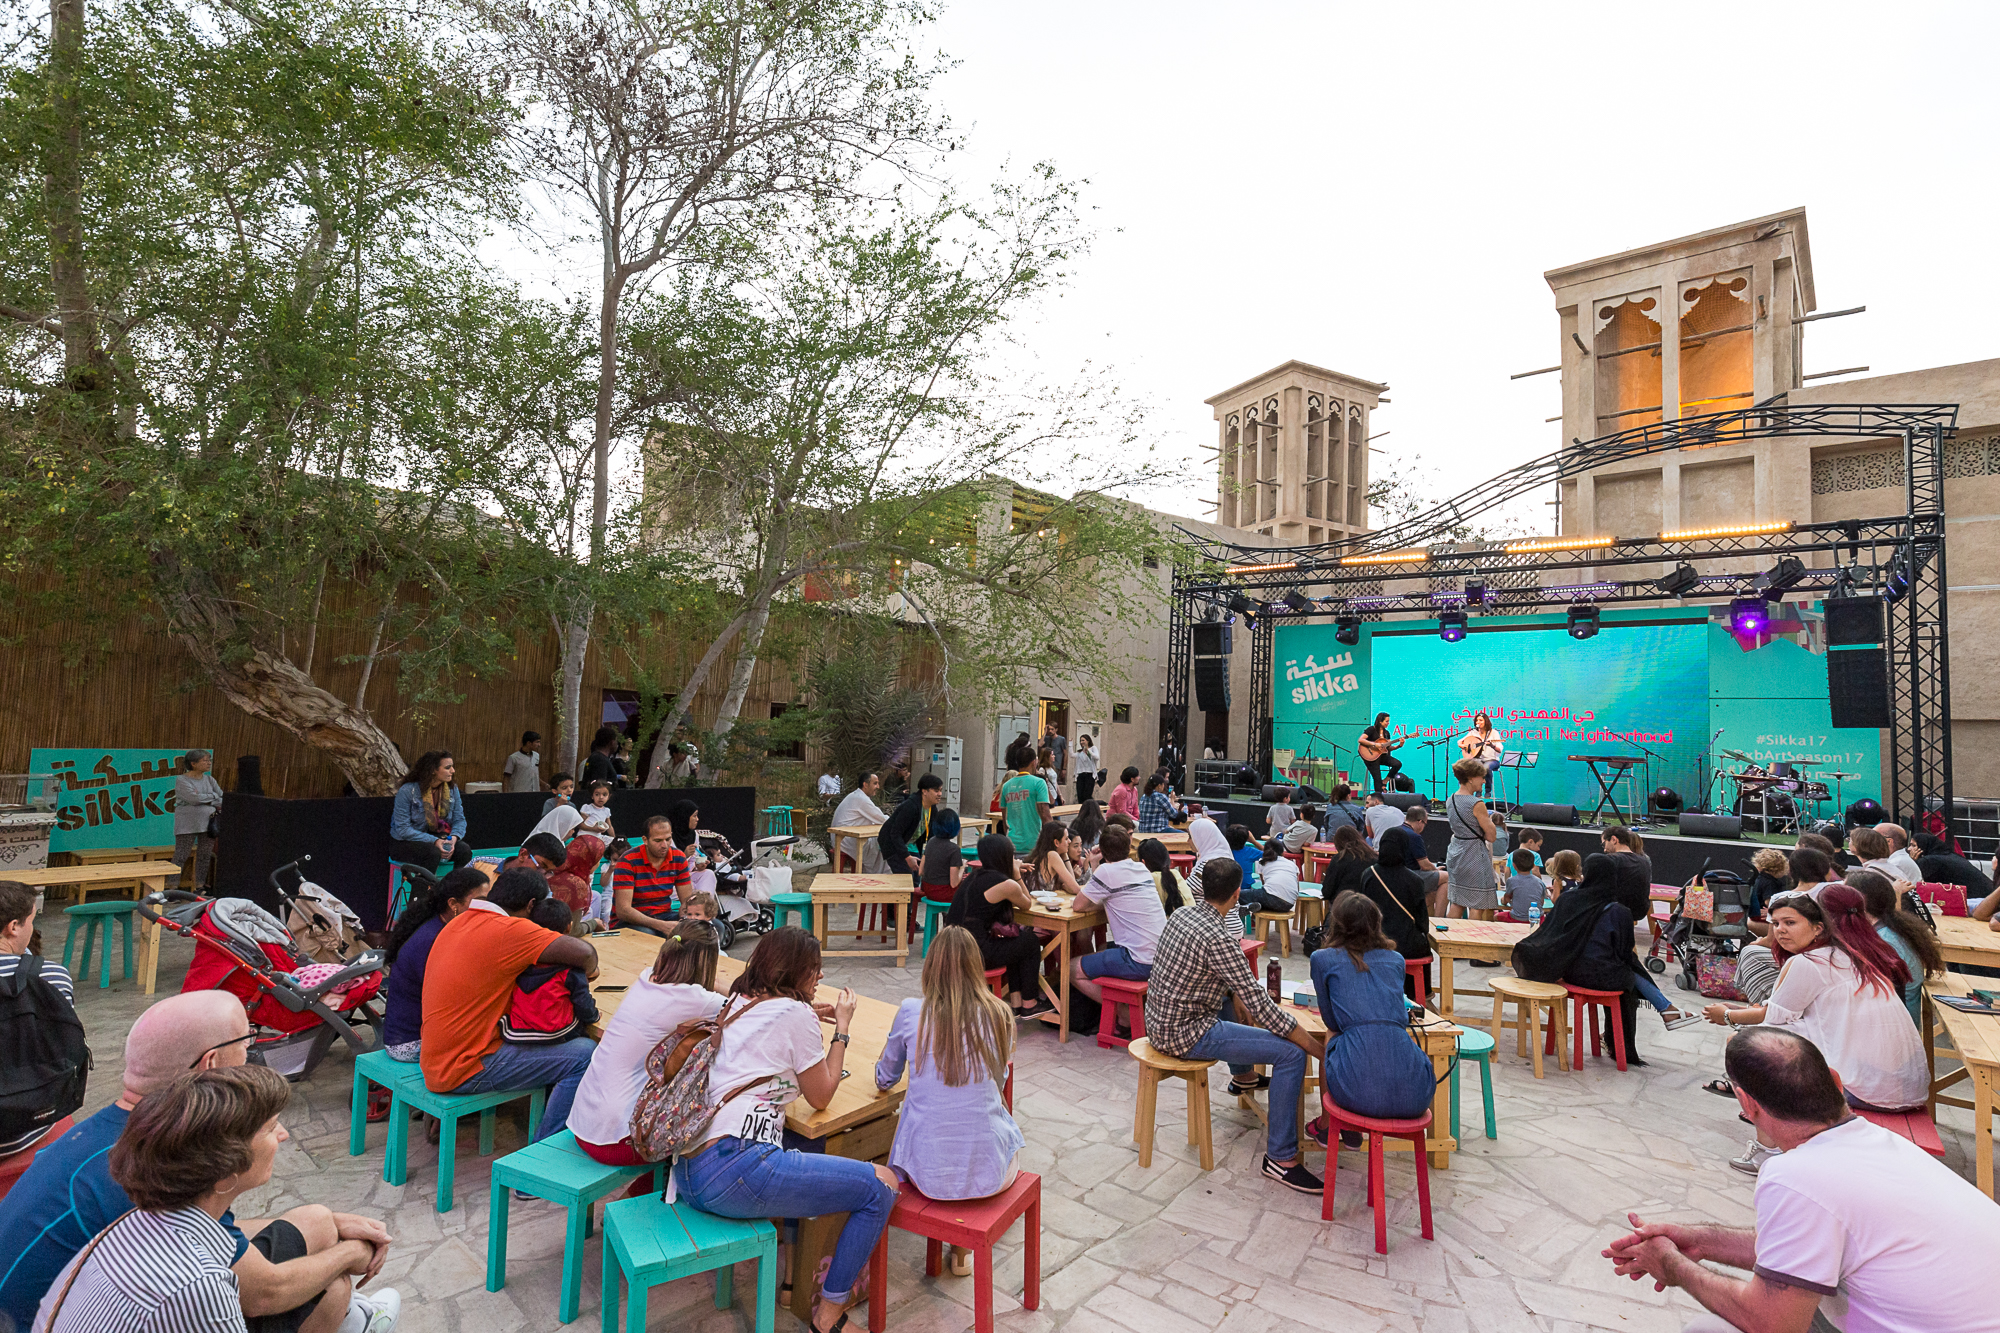 Sikka 2017 - Crowd shots - 086